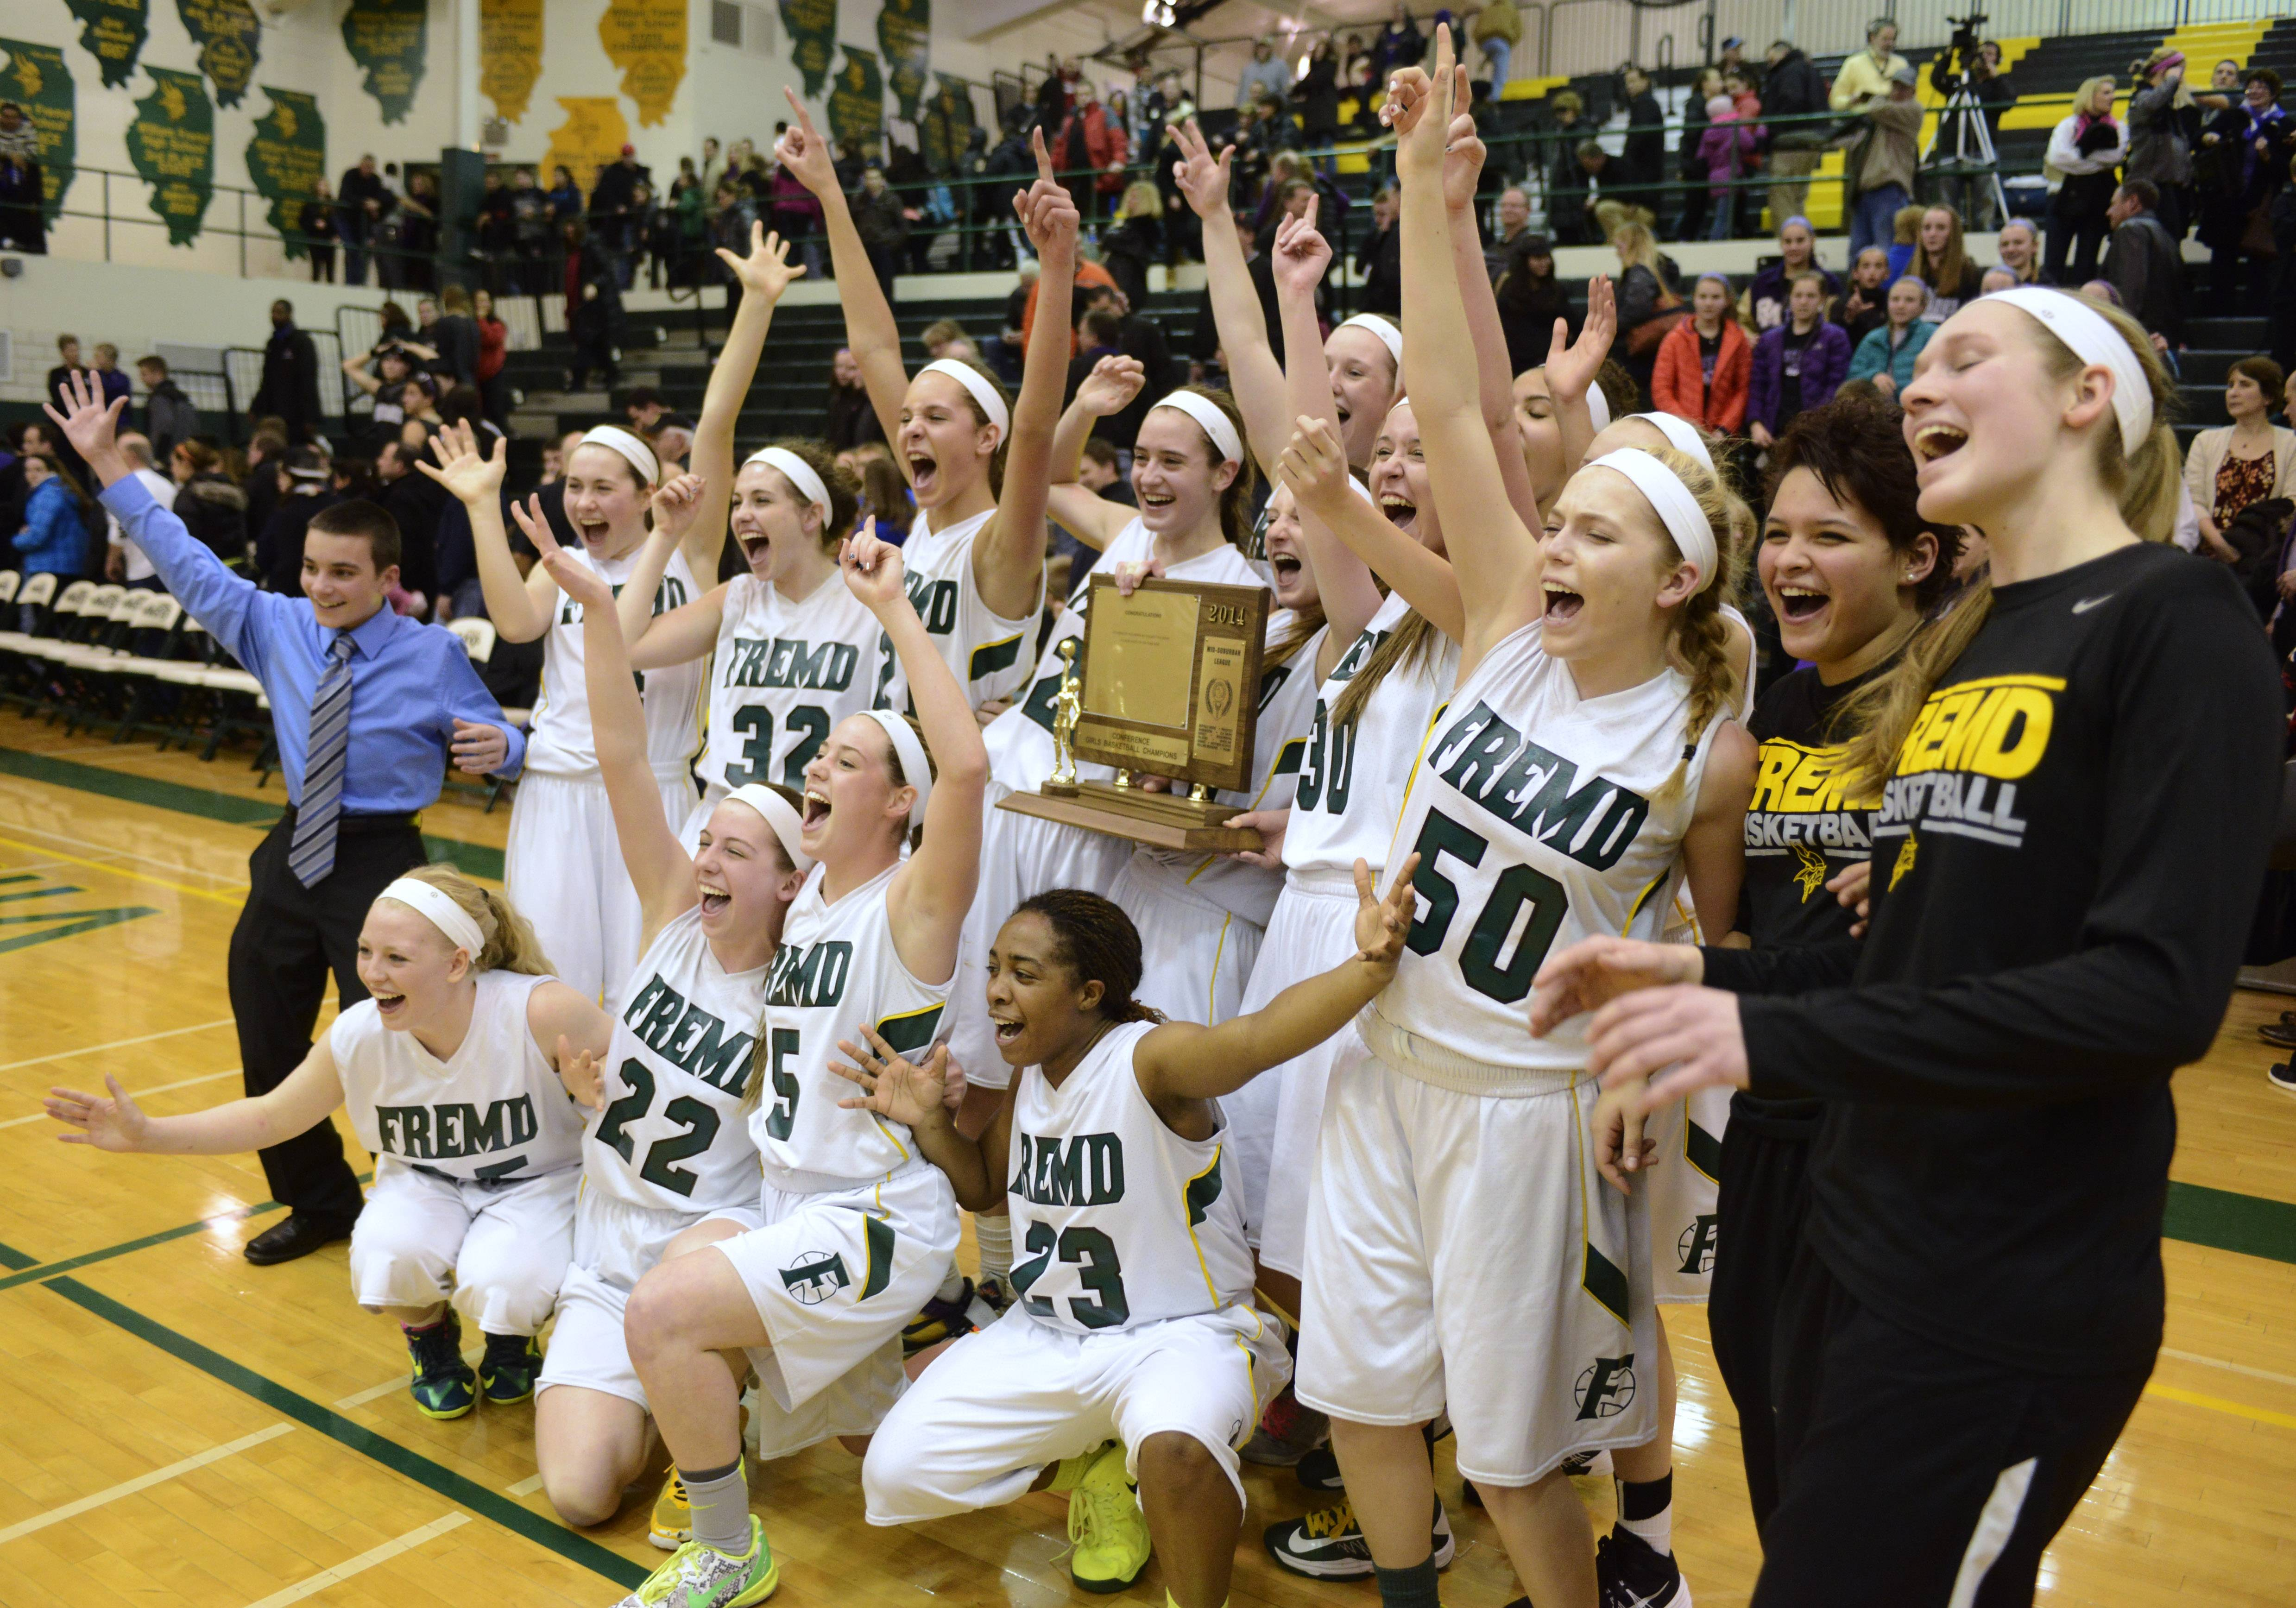 Fremd takes center stage in MSL title game